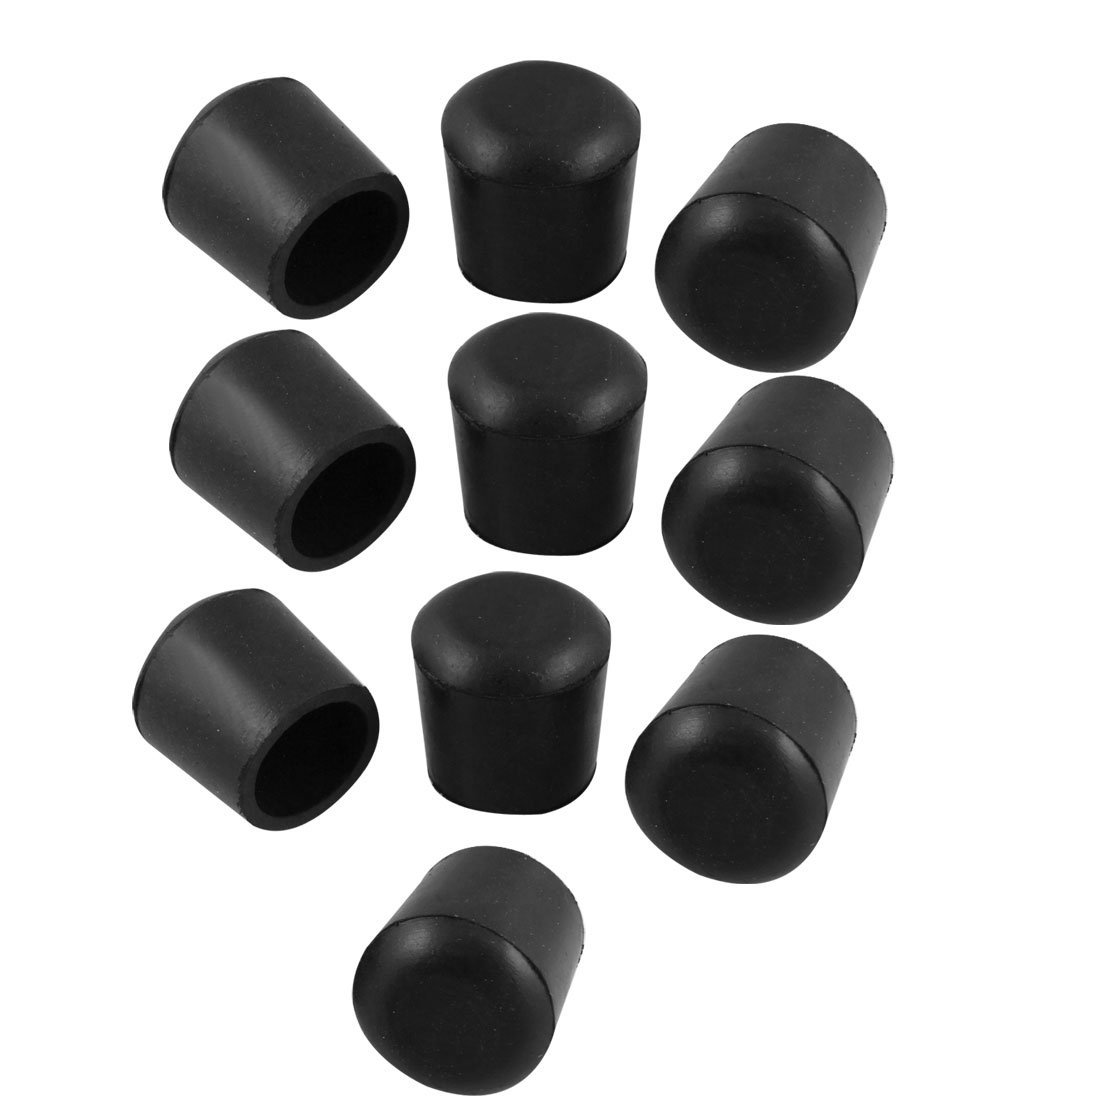 NOCM Black 10 Pcs 25mm Cone Shaped Dia Furniture Table Chair Rubber Foot Pads Free Shipping